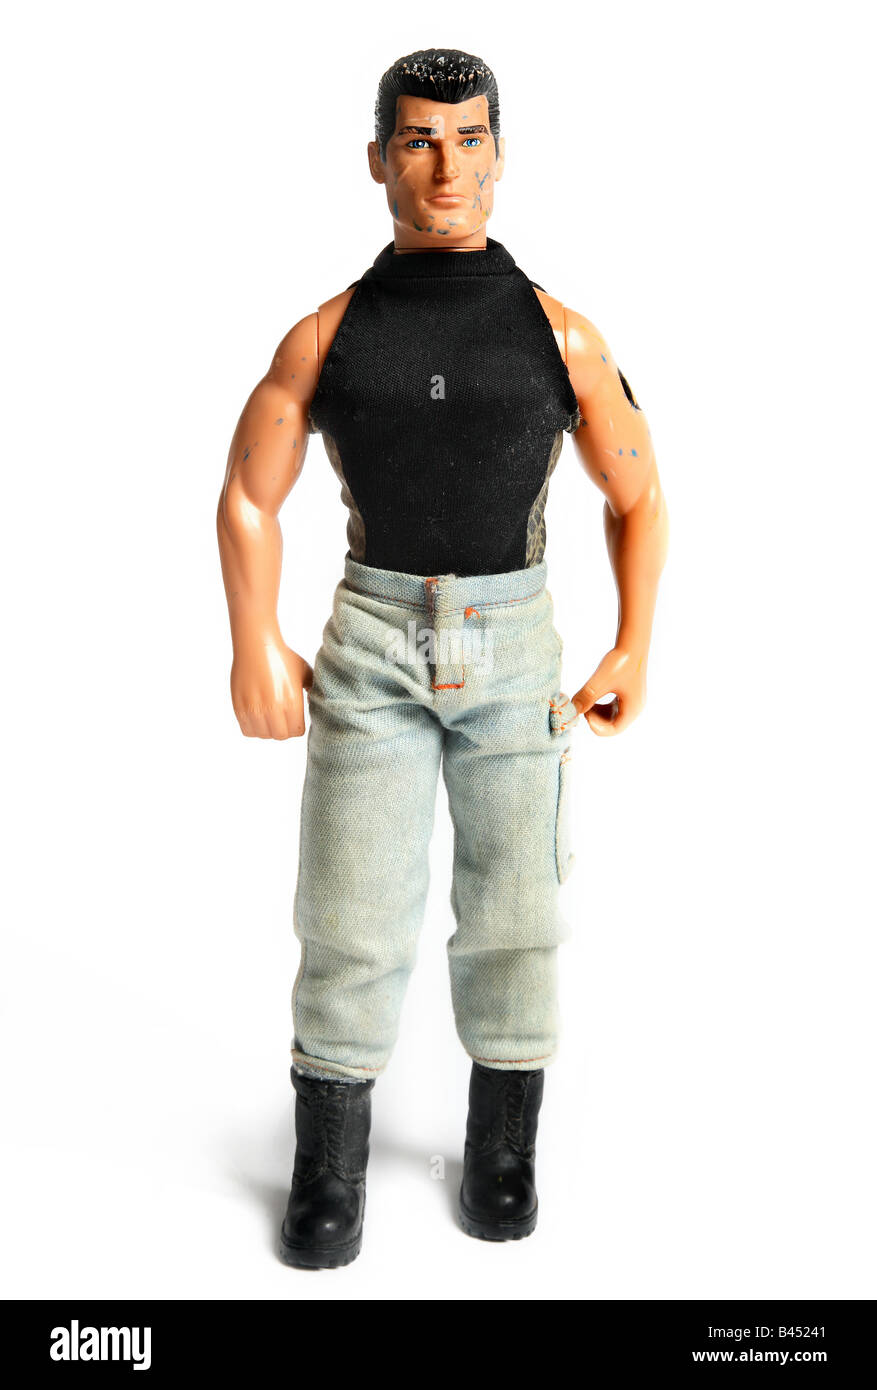 Cut out shot of action man figure wearing a black topStock Photo